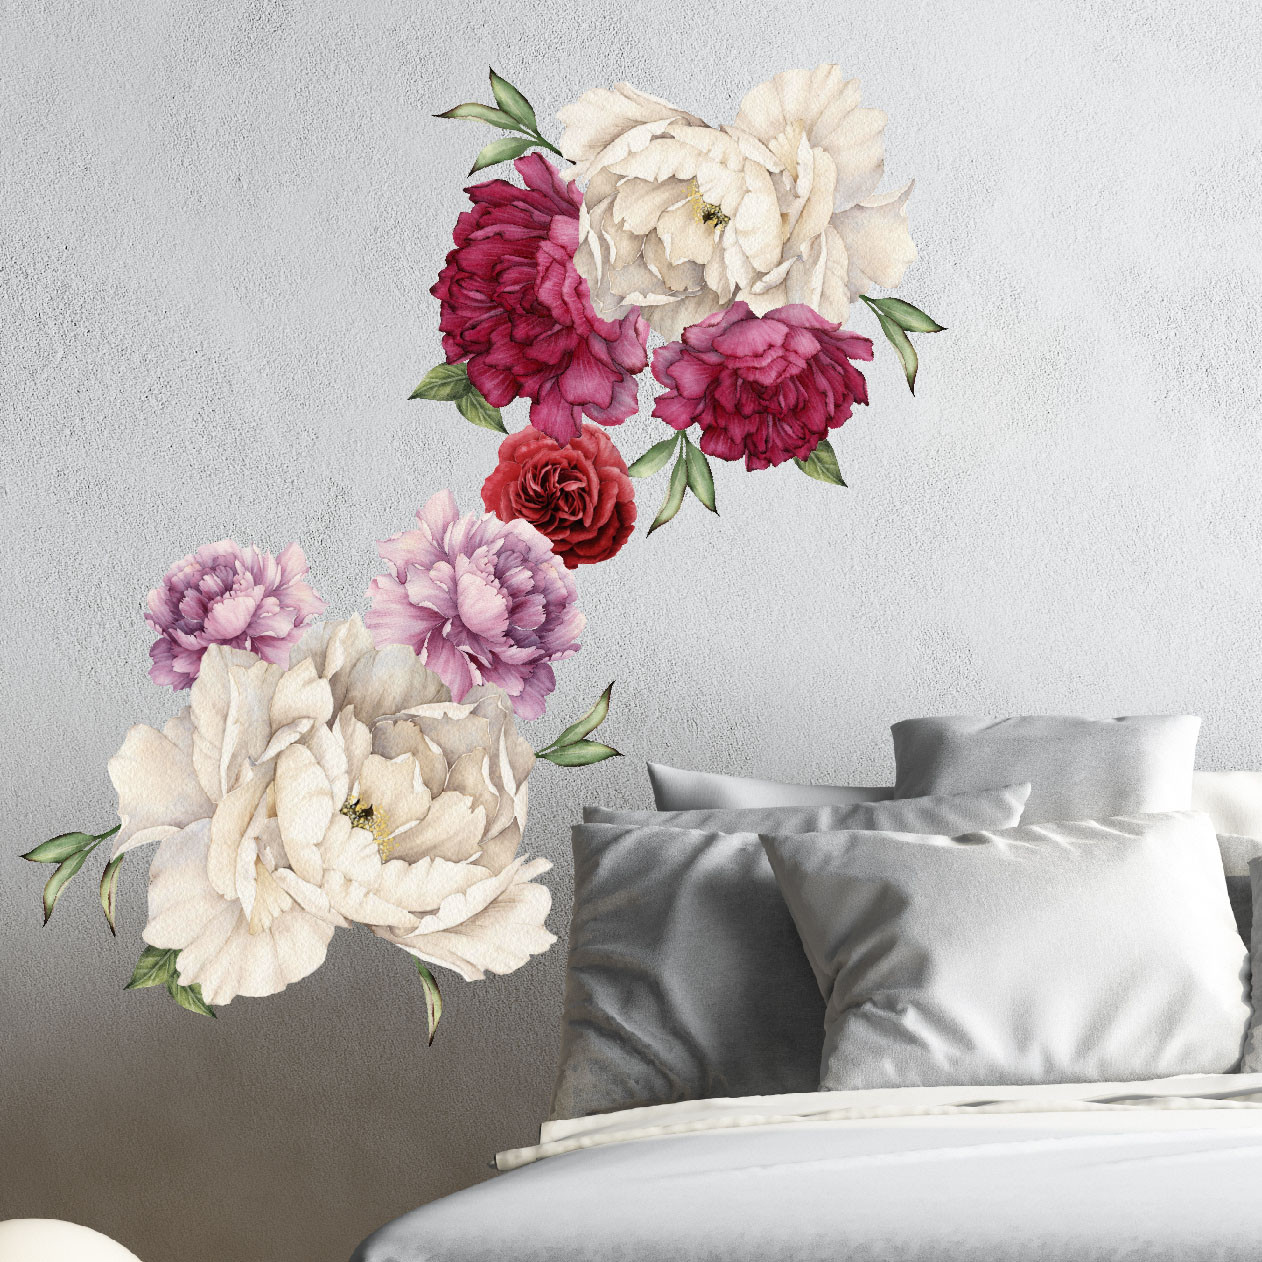 Peony Flowers Vintage Bouquet Wall Decal Sticker Peel and Stick Floral Art  Decor Removable and Reusable 7 Flowers